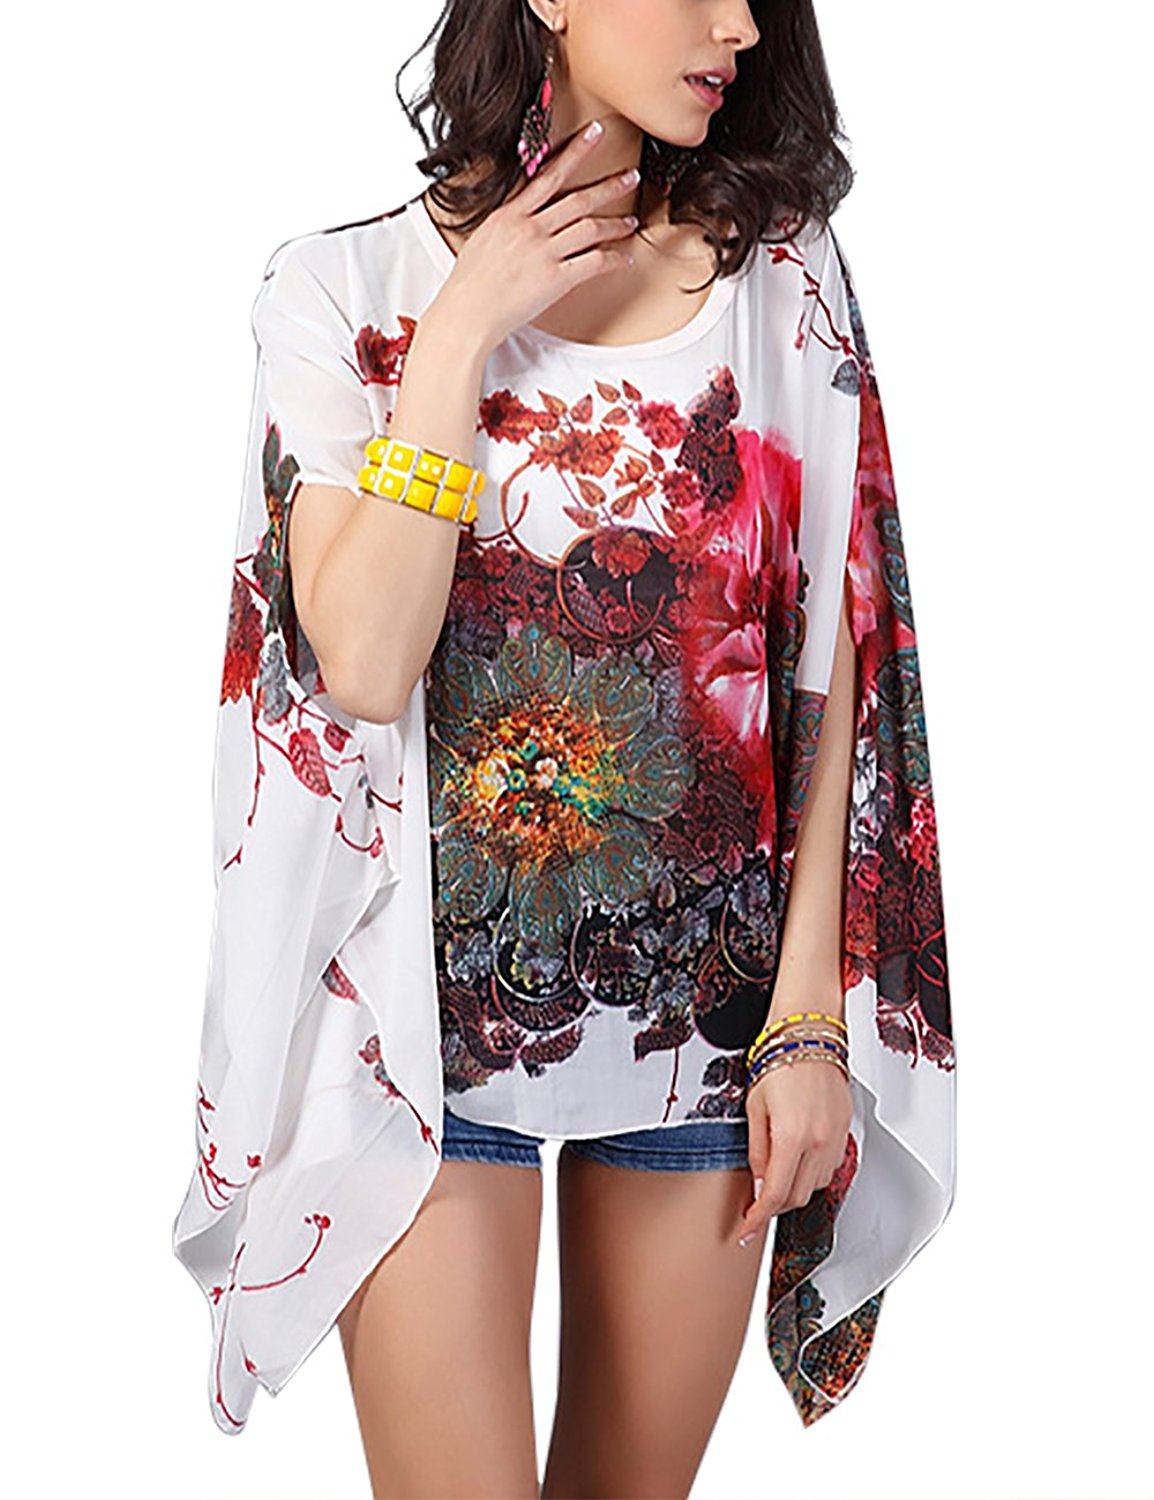 0dc18d1a56 Get Quotations · DJT FASHION Womens Floral Chiffon Caftan Beach Loose  Blouse Tunic Tops